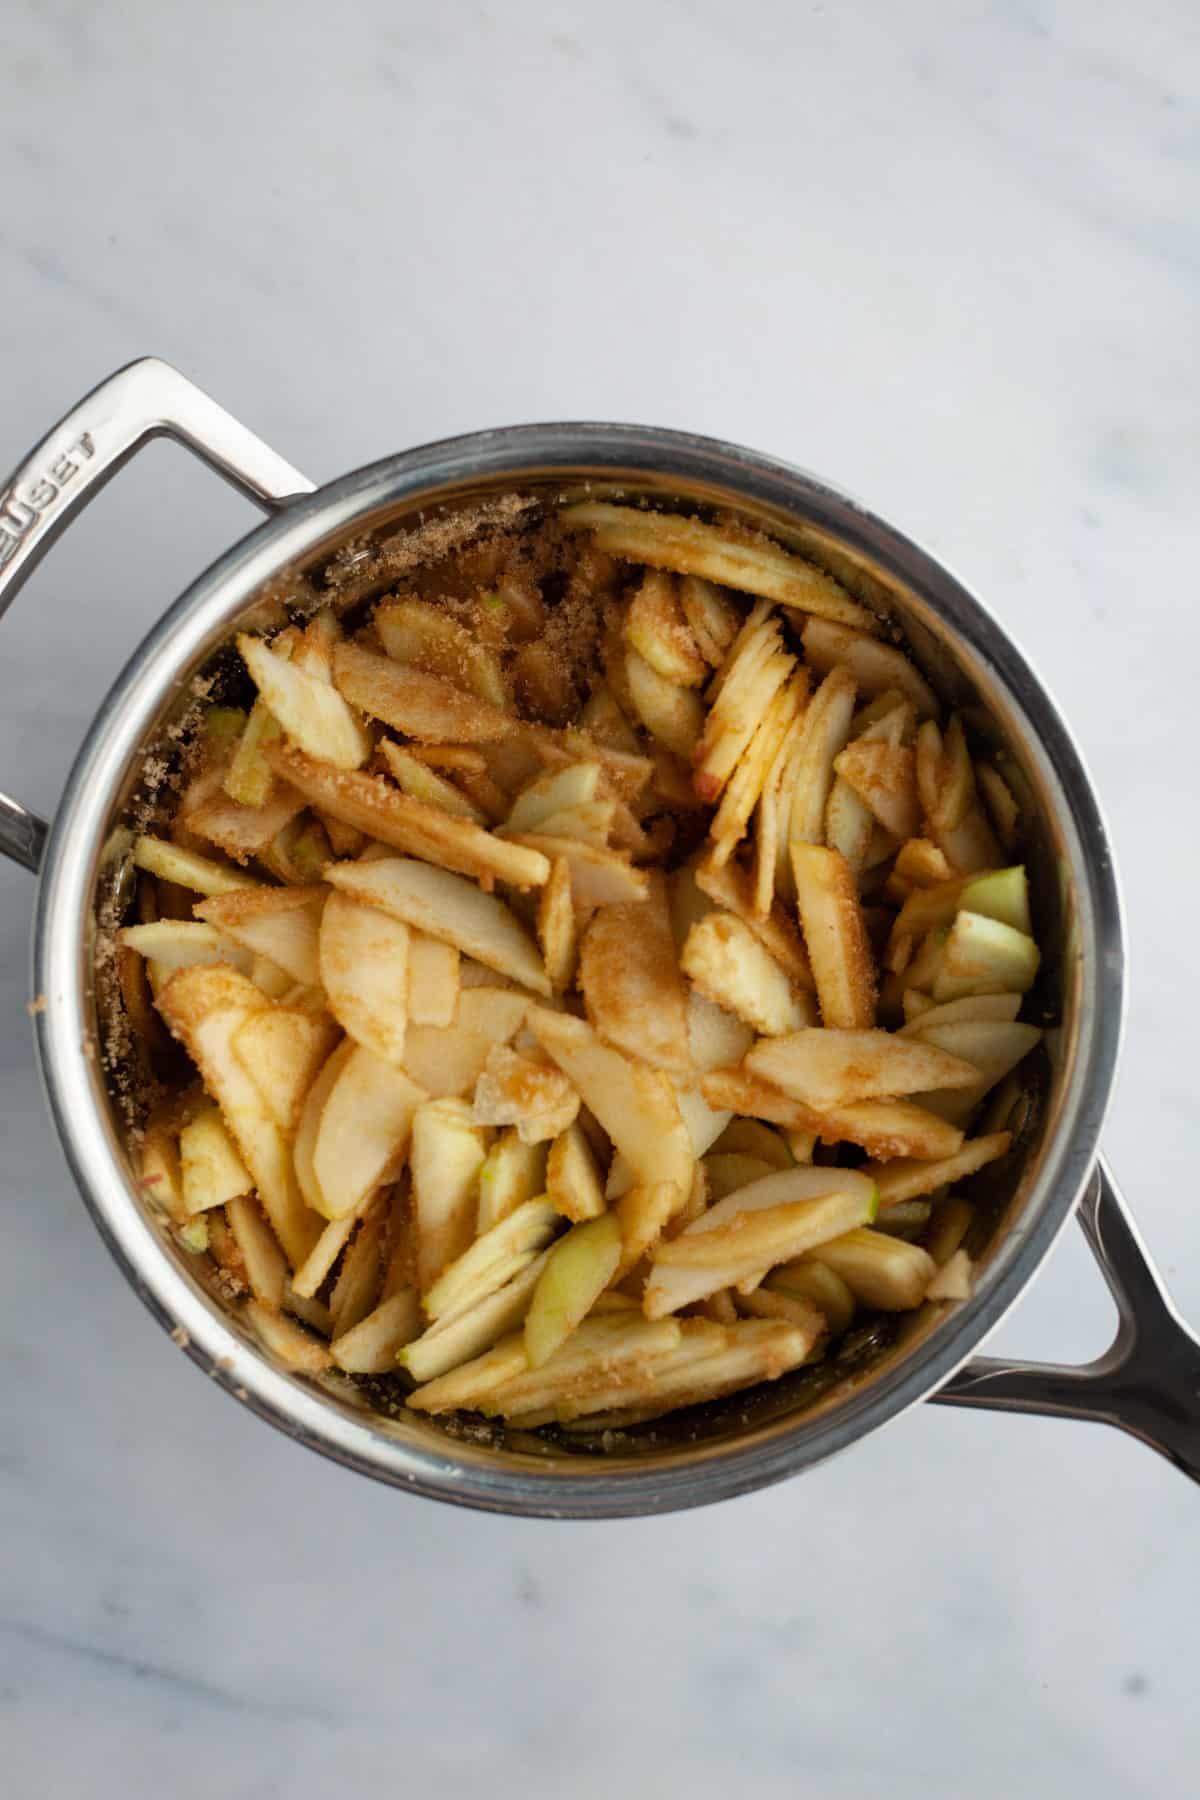 slices of apple tossed in cinnamon in a small saucepan